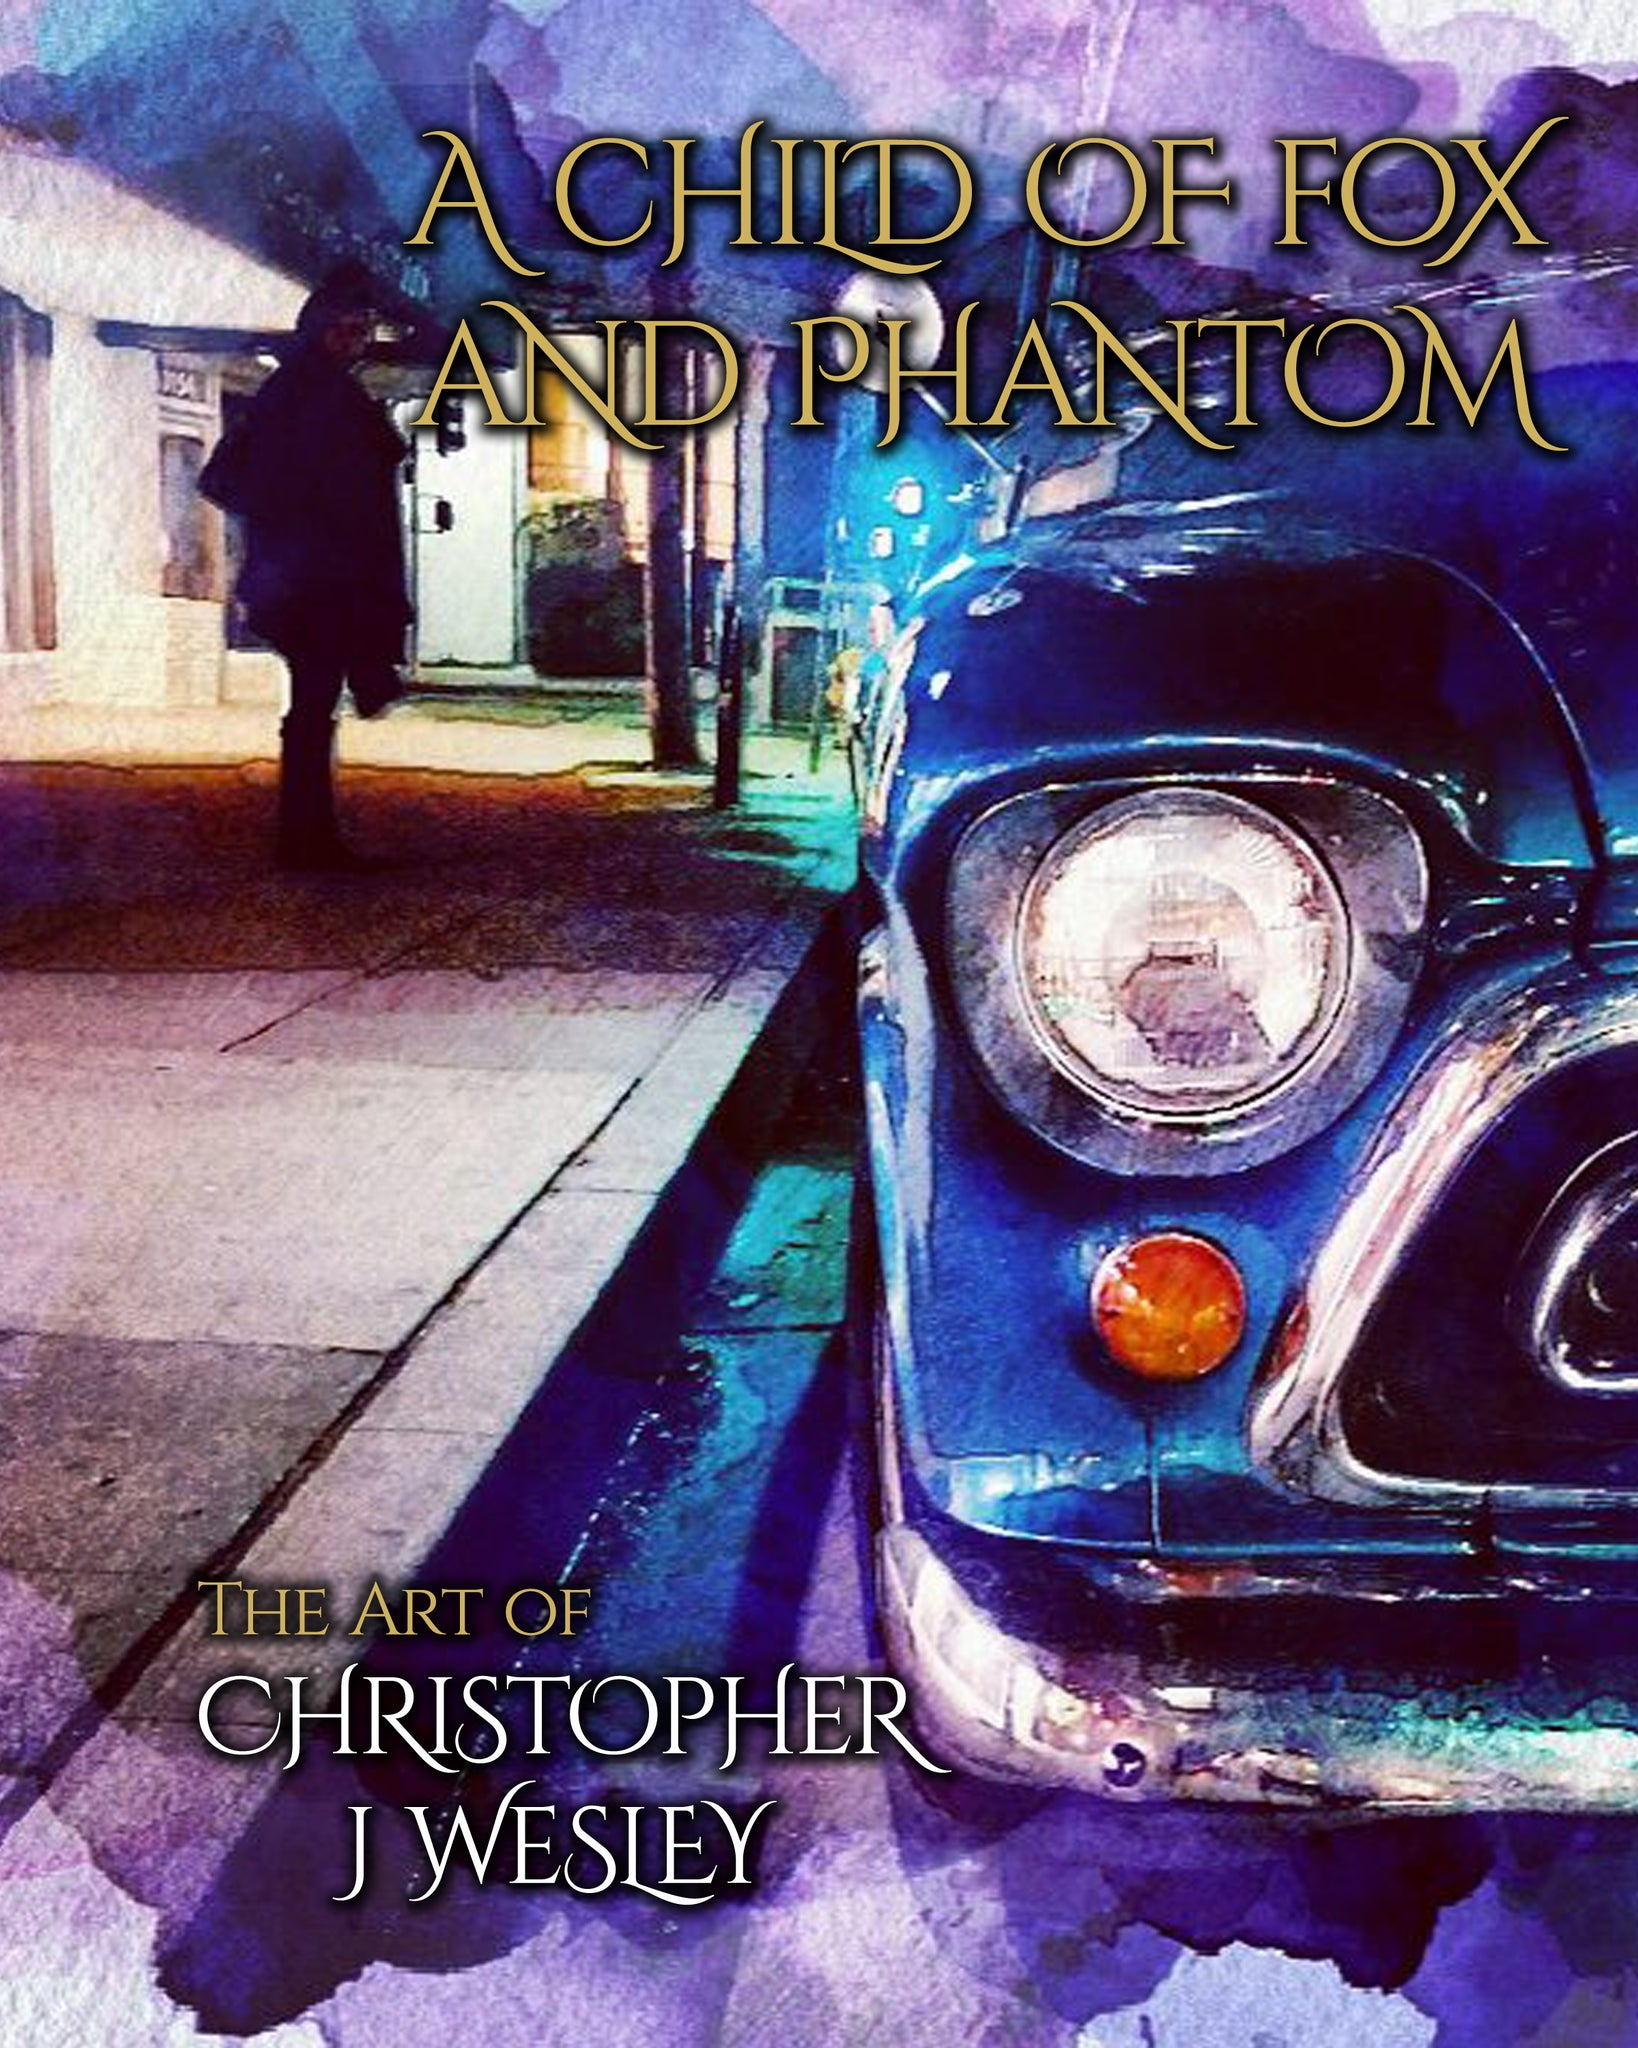 A Child of Fox and Phantom (The Art of Christopher J Wesley)